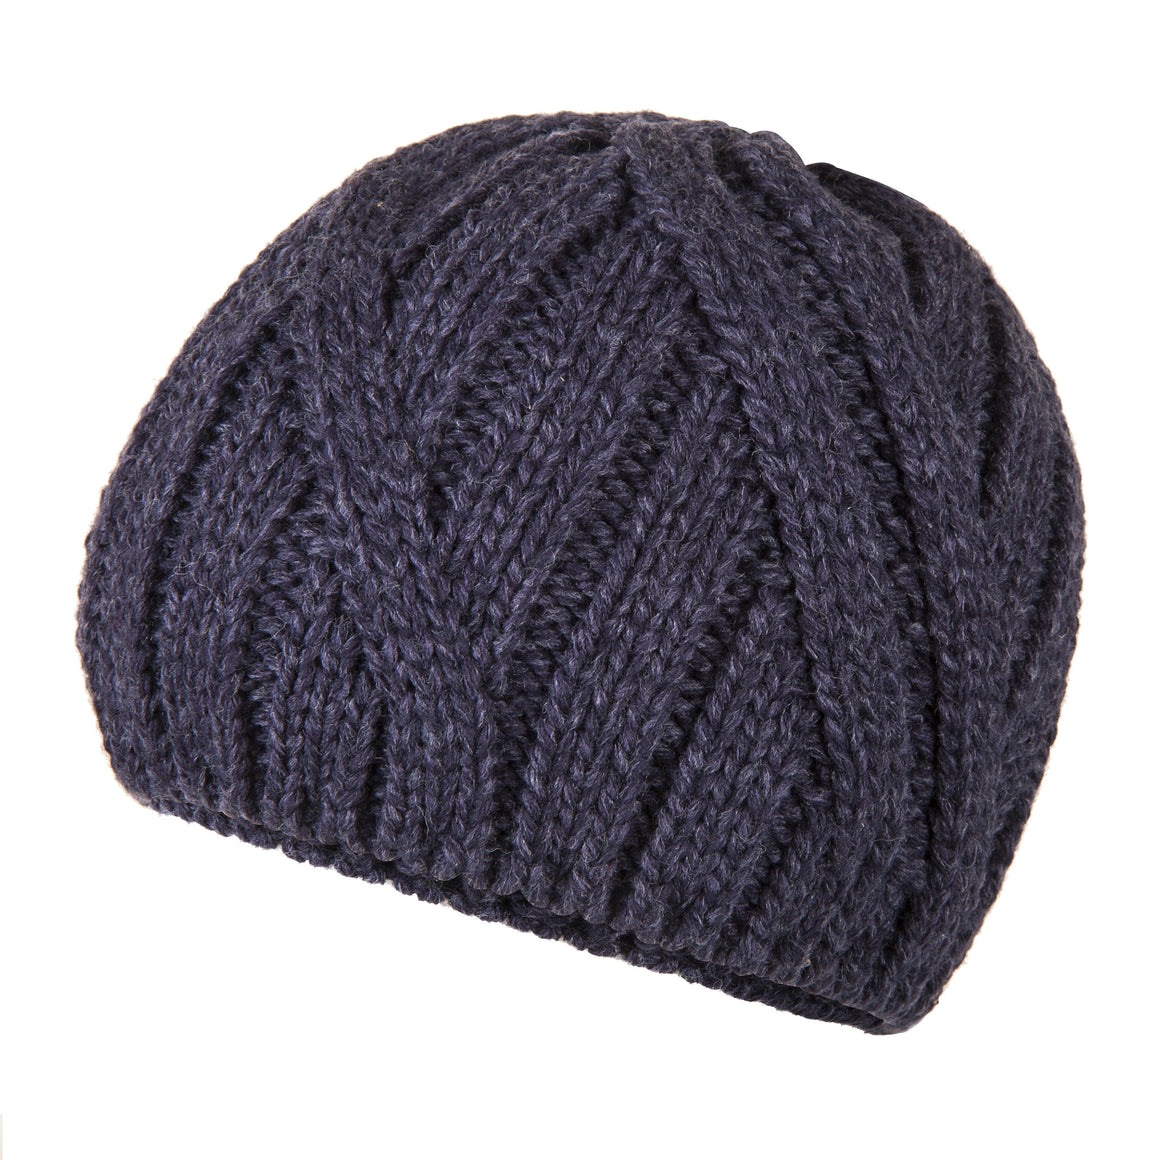 Blue Wool Warm Cable Knit Beanie | buy now at The Cashmere Choice London